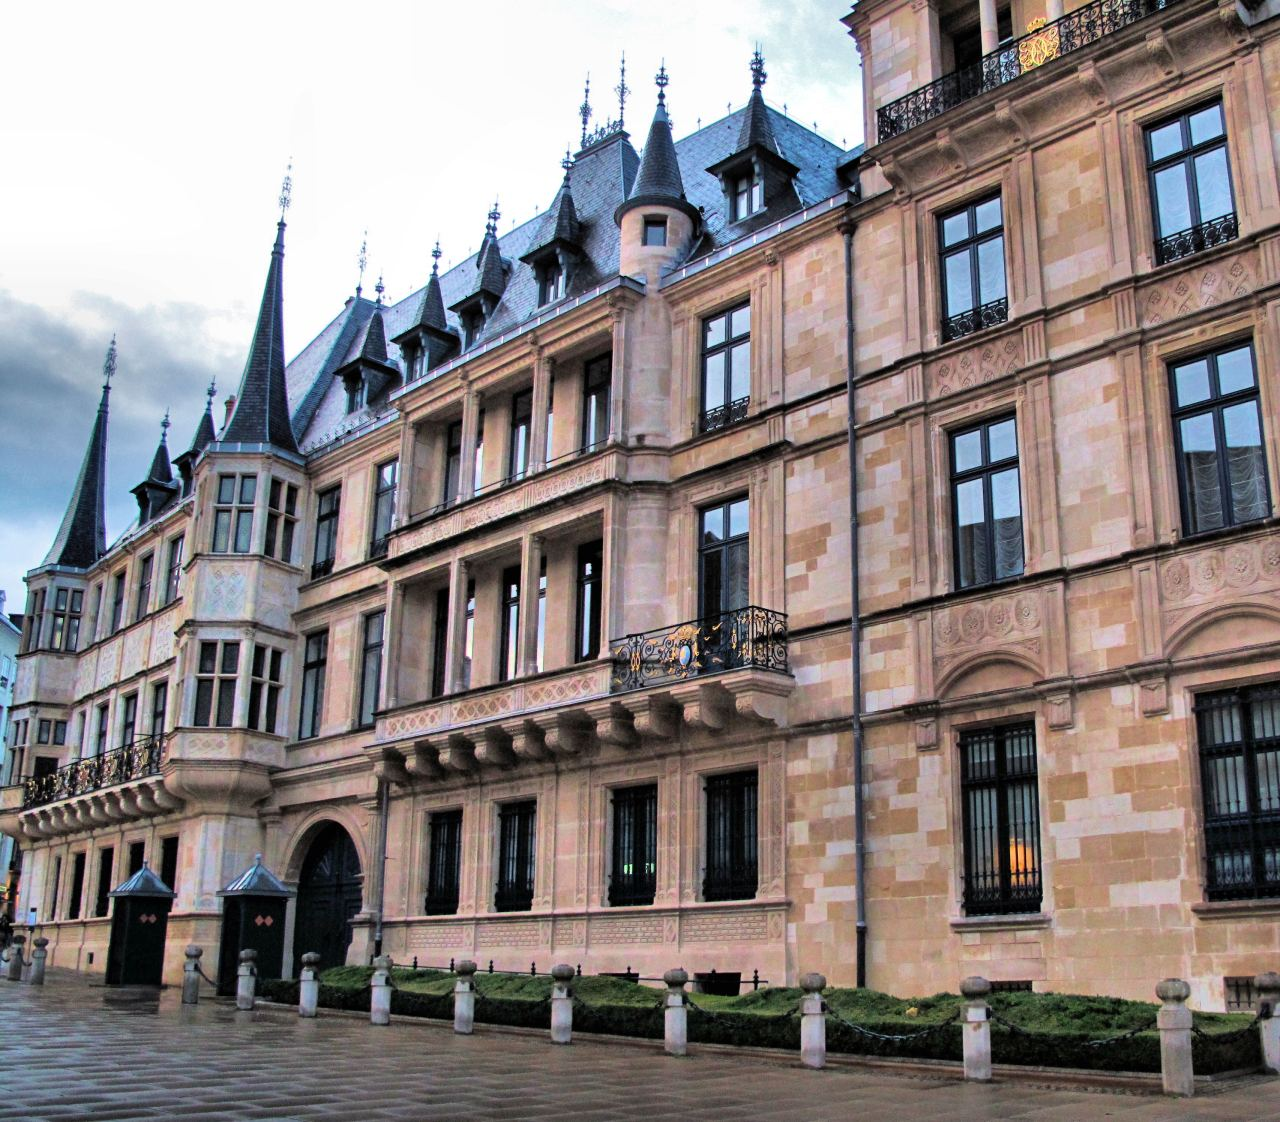 Luxembourg City Tour: Where To Stay In Luxembourg? Best Areas, Places, Etc